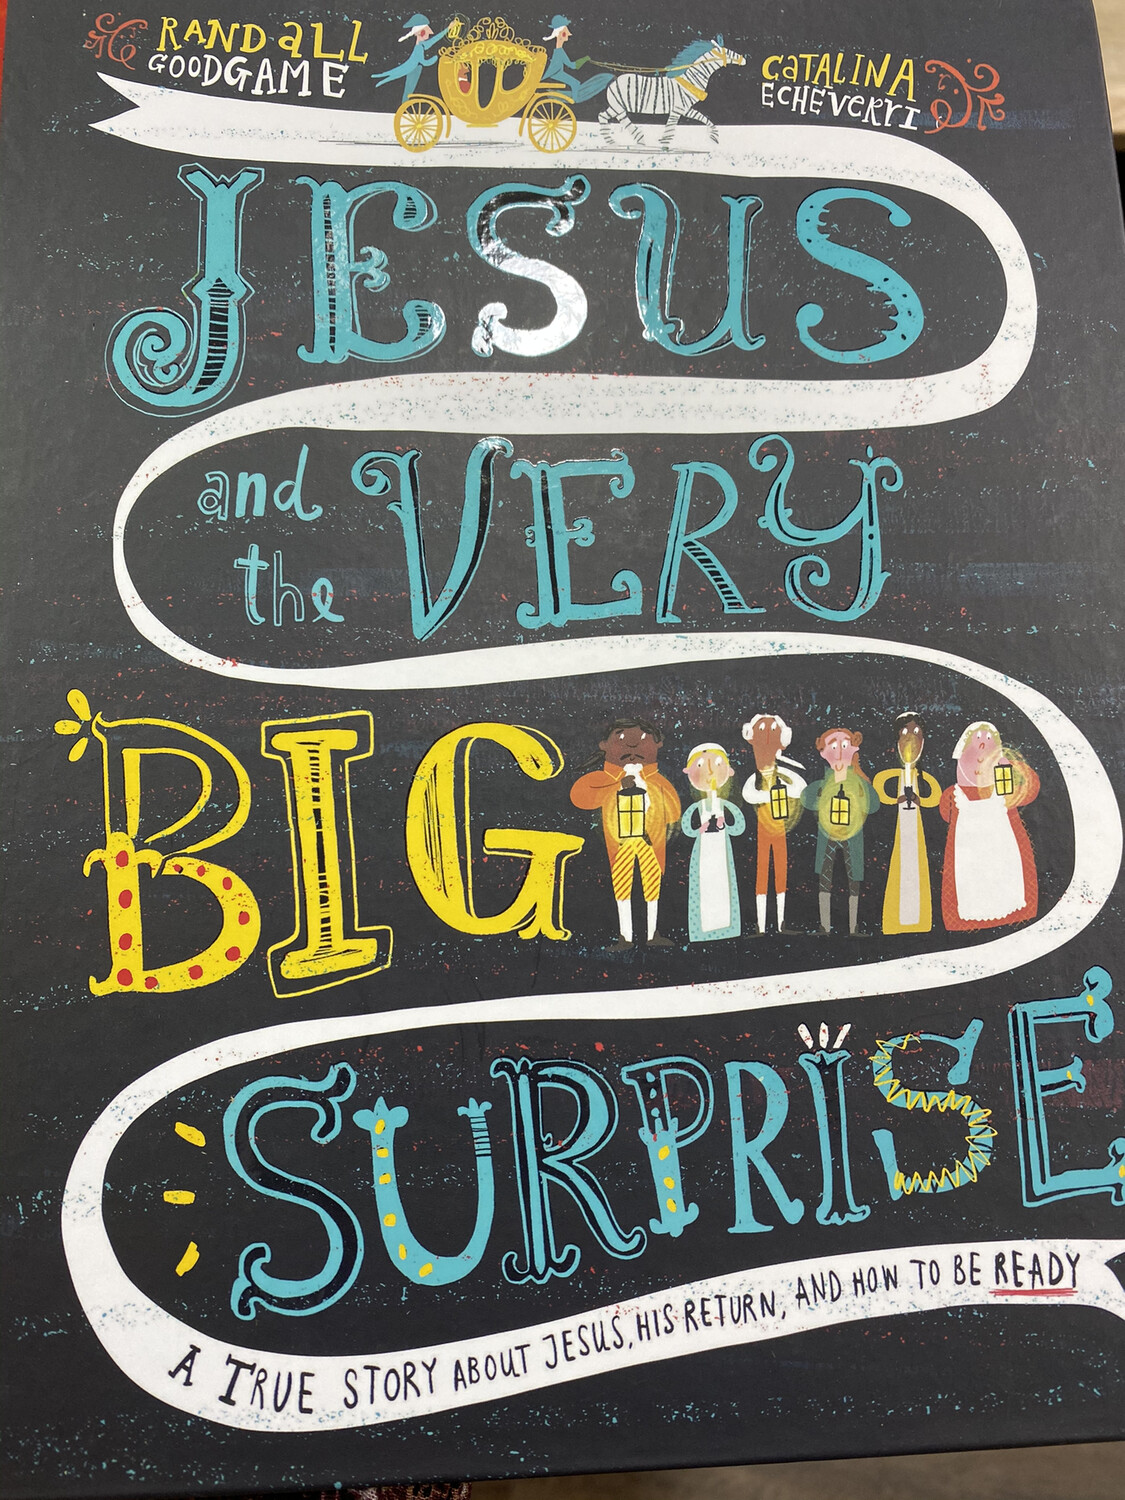 GOODGAME, Jesus And The Very Big Surprise